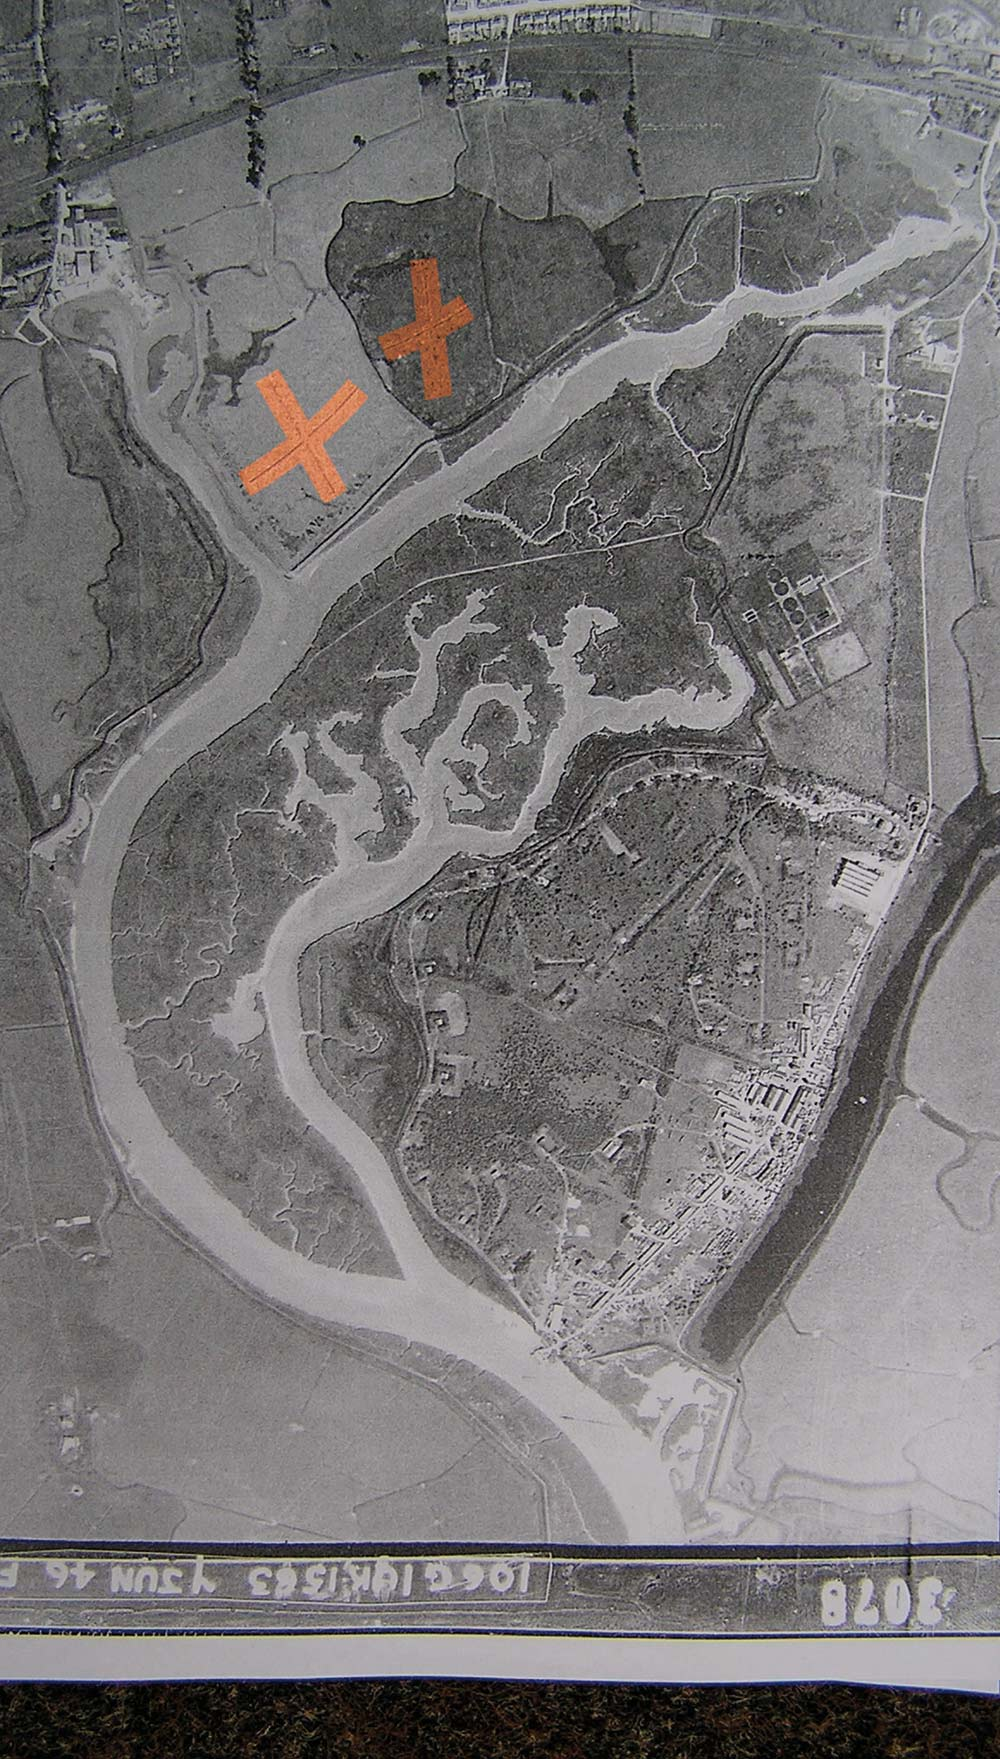 This 1946 RAF aerial photograph of the Pitsea site clearly shows the distinctive cross patterns of glider ditches (picked out in orange) on the marshes to the north. Glider ditches were more extensively cut into the marshes to the East of the site.